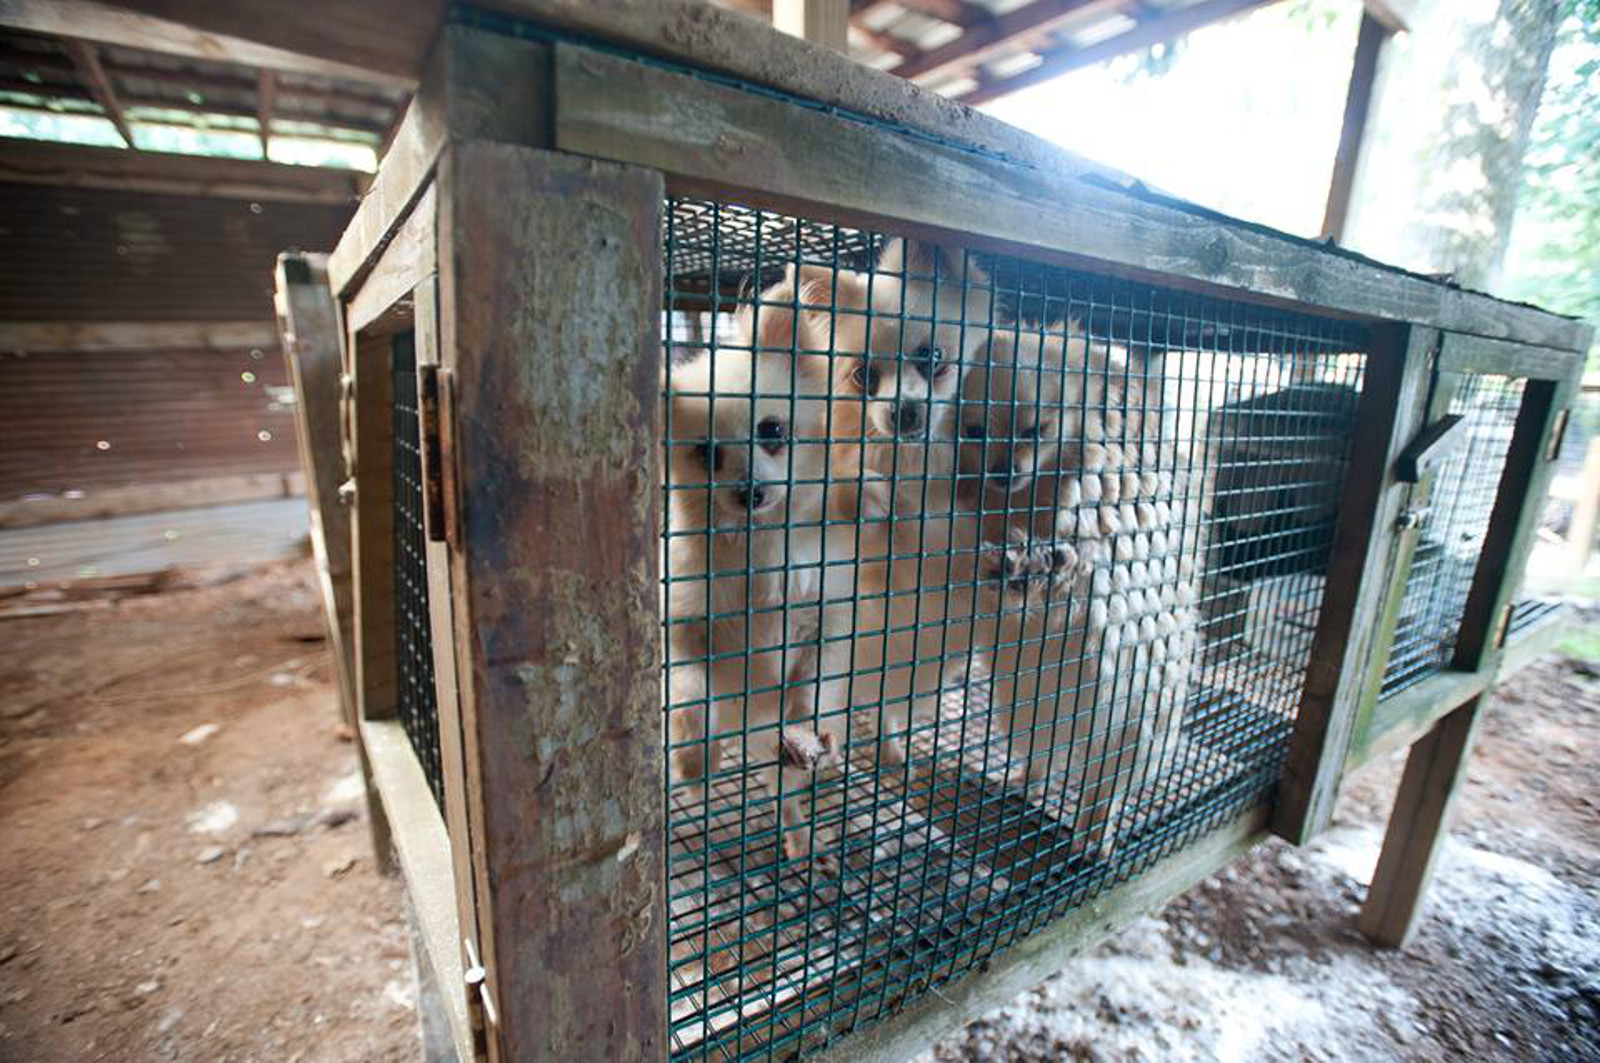 Anti-Puppy Mill Legislation on the Rise! Philadelphia and Illinois Consider Puppy Mill Pet Store Bans